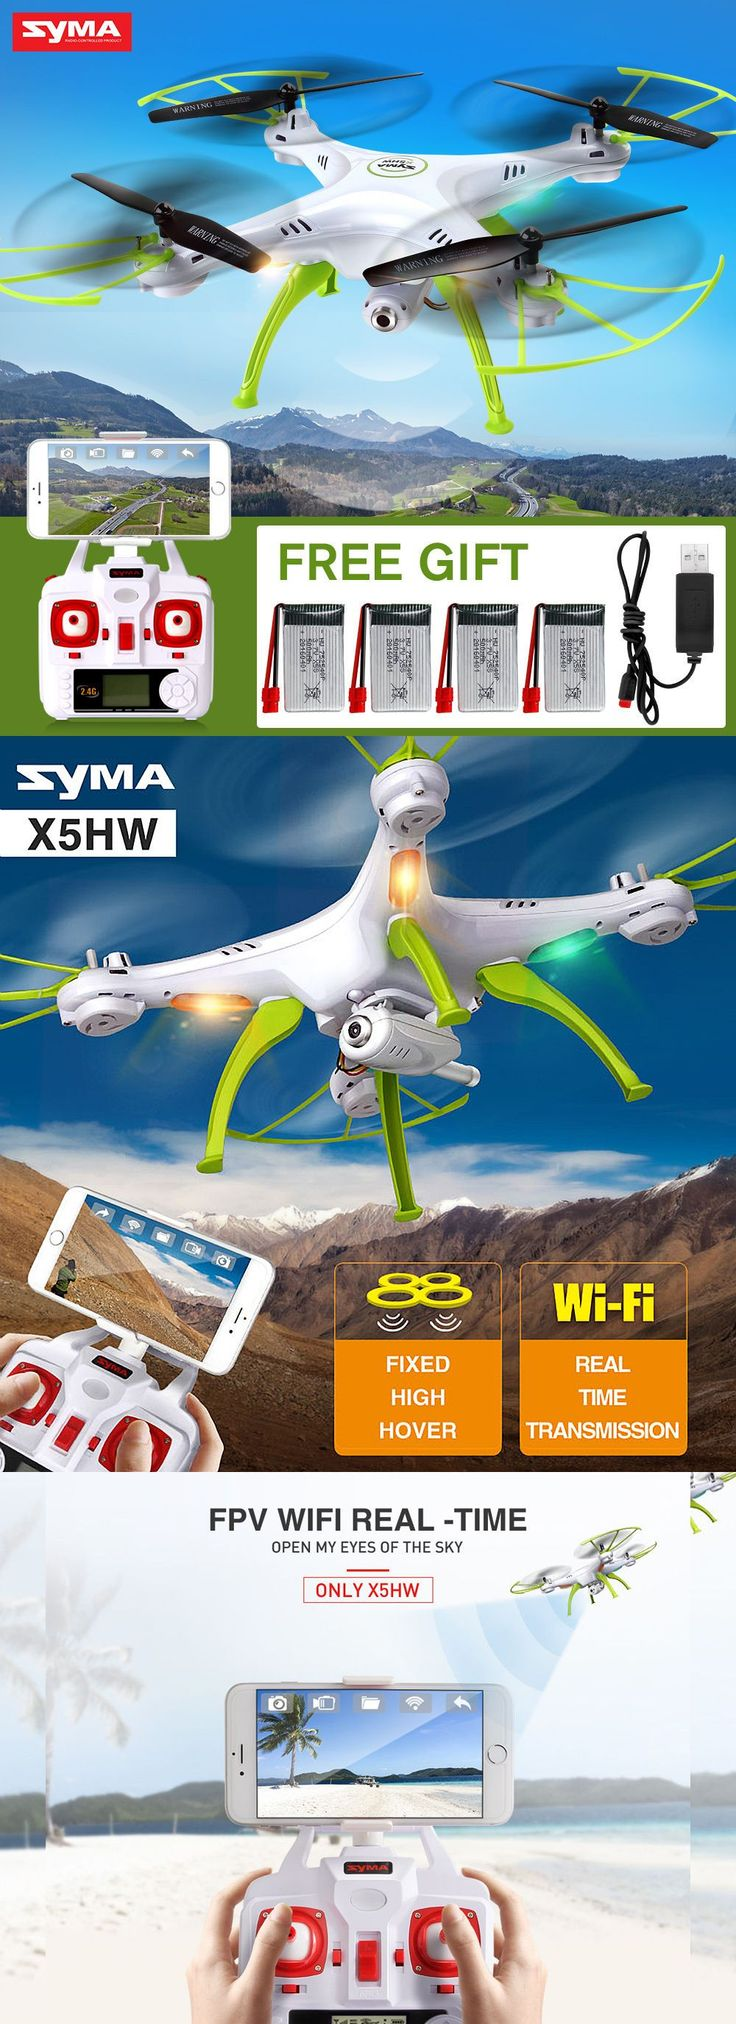 Syma X5HW 2.4G 4CH 6Axis FPV Drone with WIFI HD Camera Hover RC Quadcopter US | drone | syma | drone with camera | drone camera | drones for sale | dron | camera drone | best drones | rc drone | quadcopter with camera | best drones with camera | rc quadcopter | gopro drone | best camera drone | best quadcopter | quadcopter drone | quadcopter |